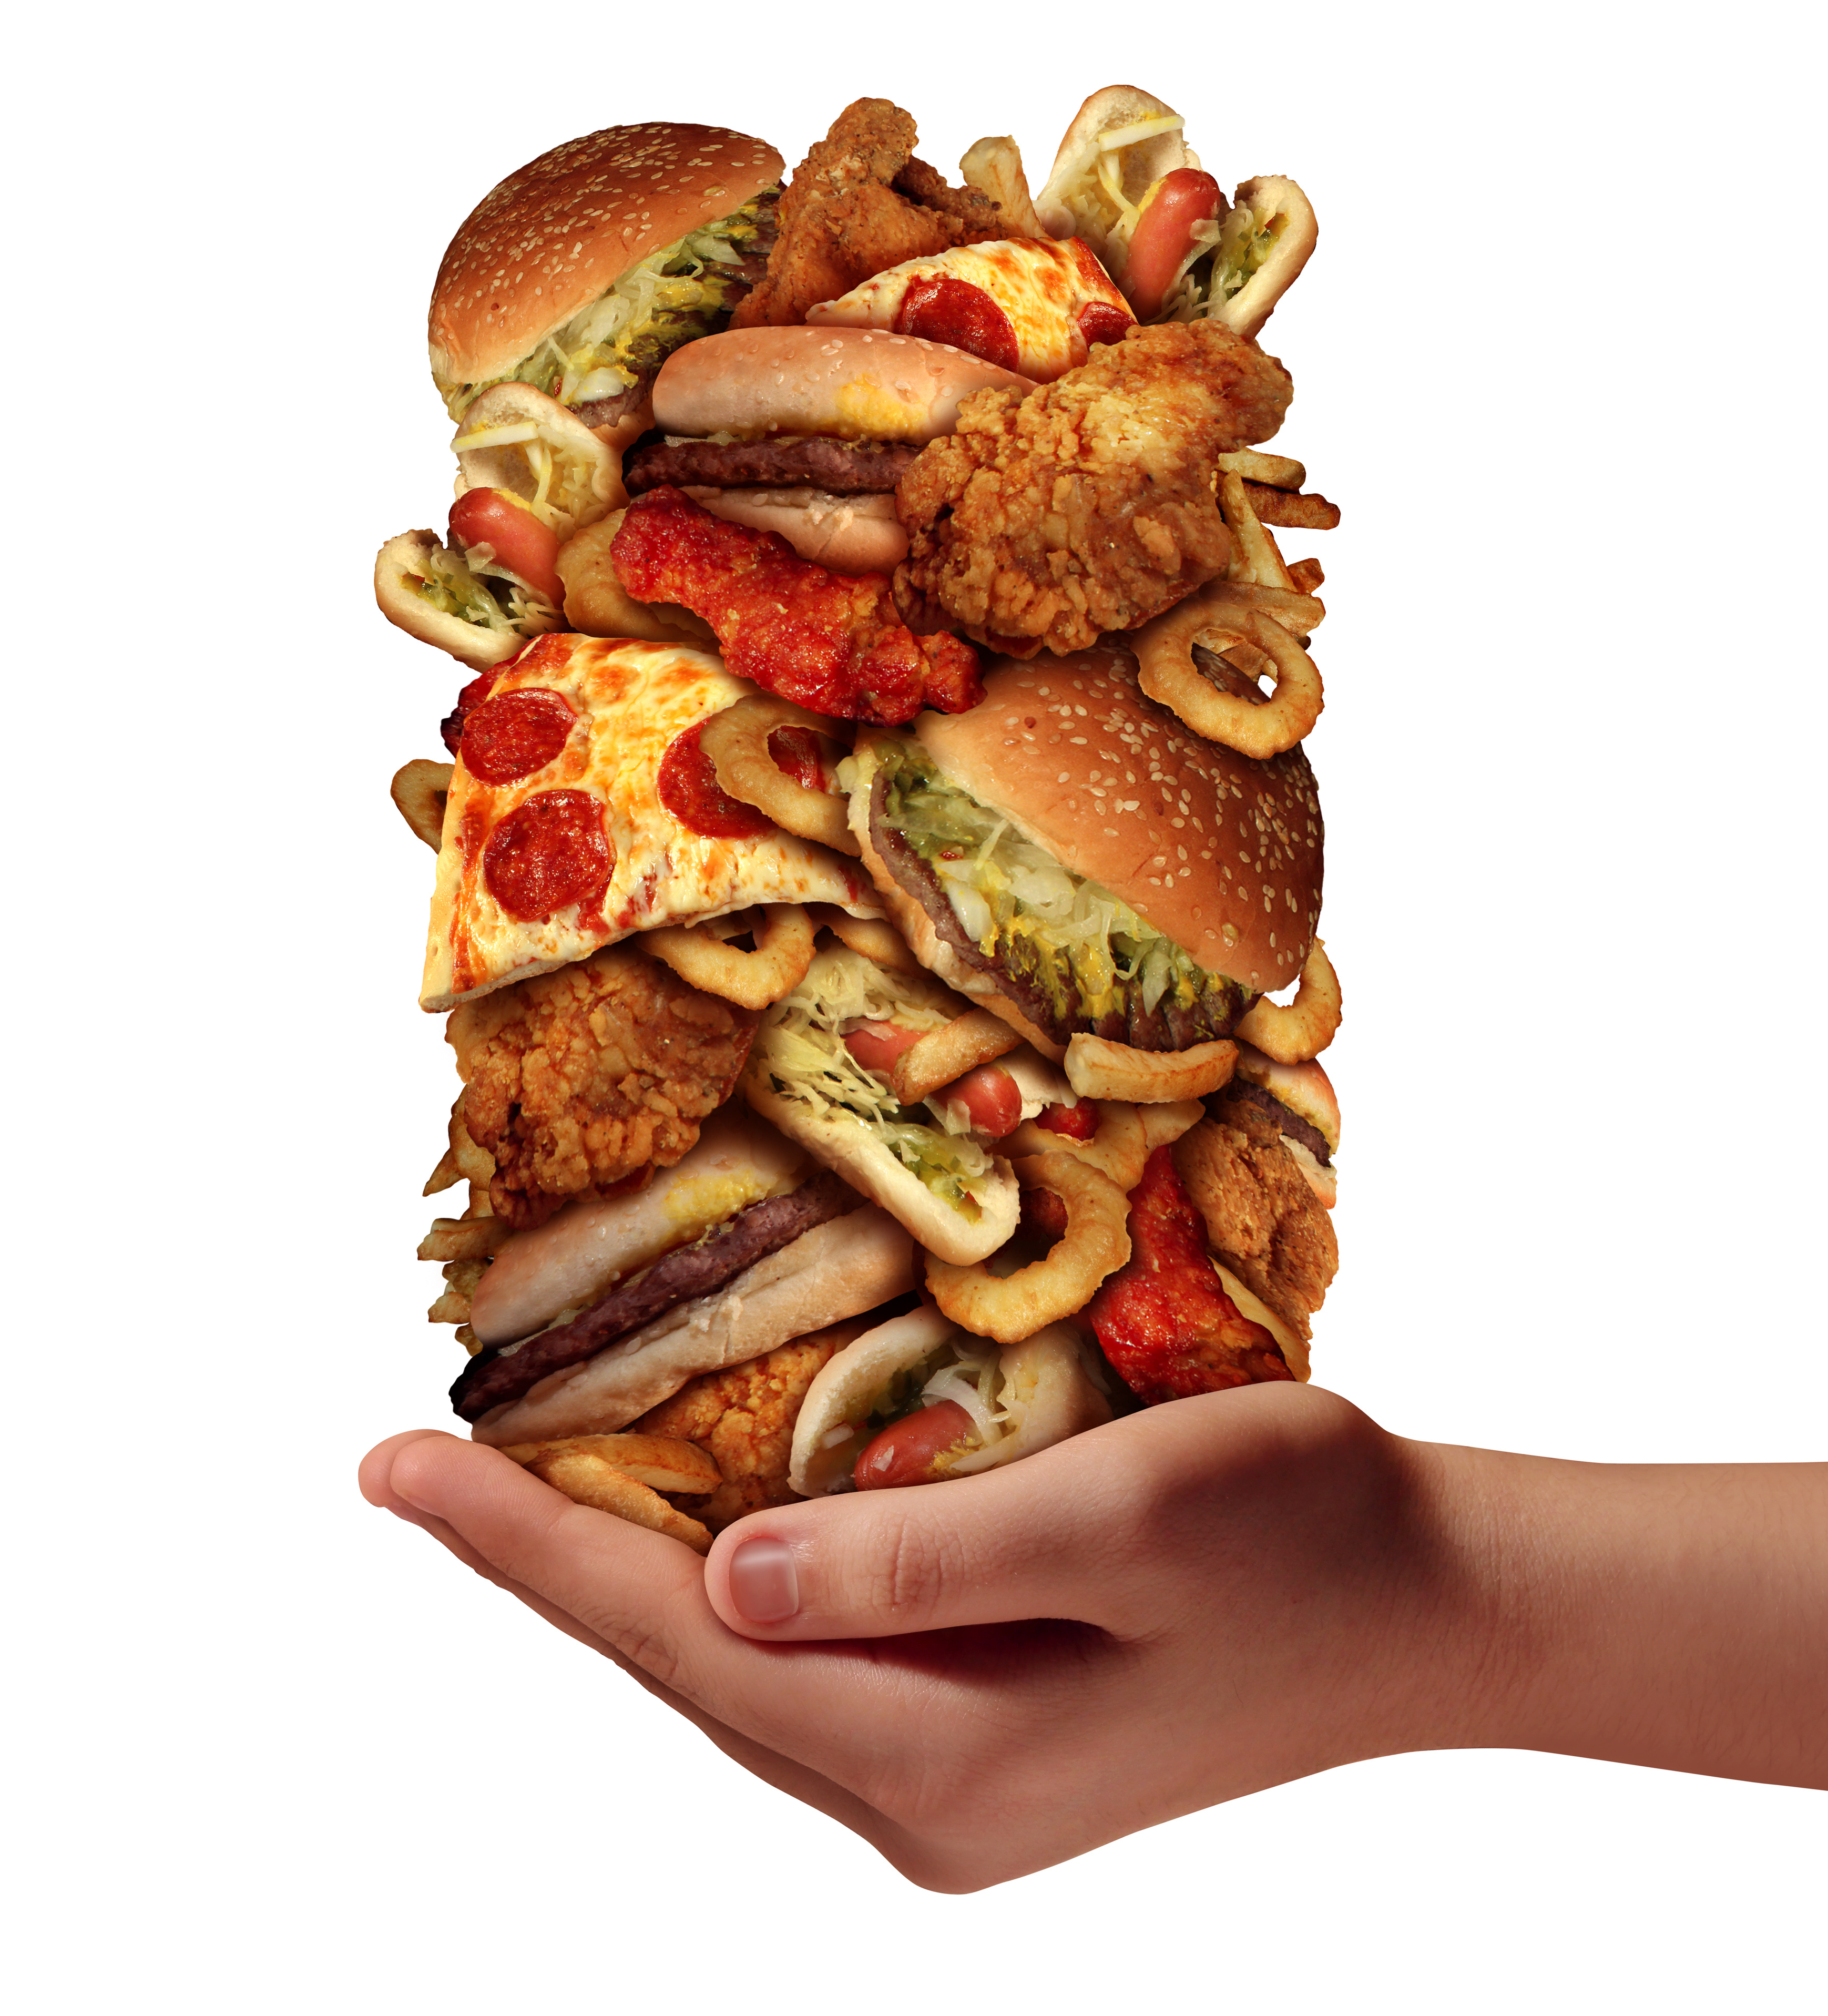 Essay About The Growth Of Fast Food Chains Around The World